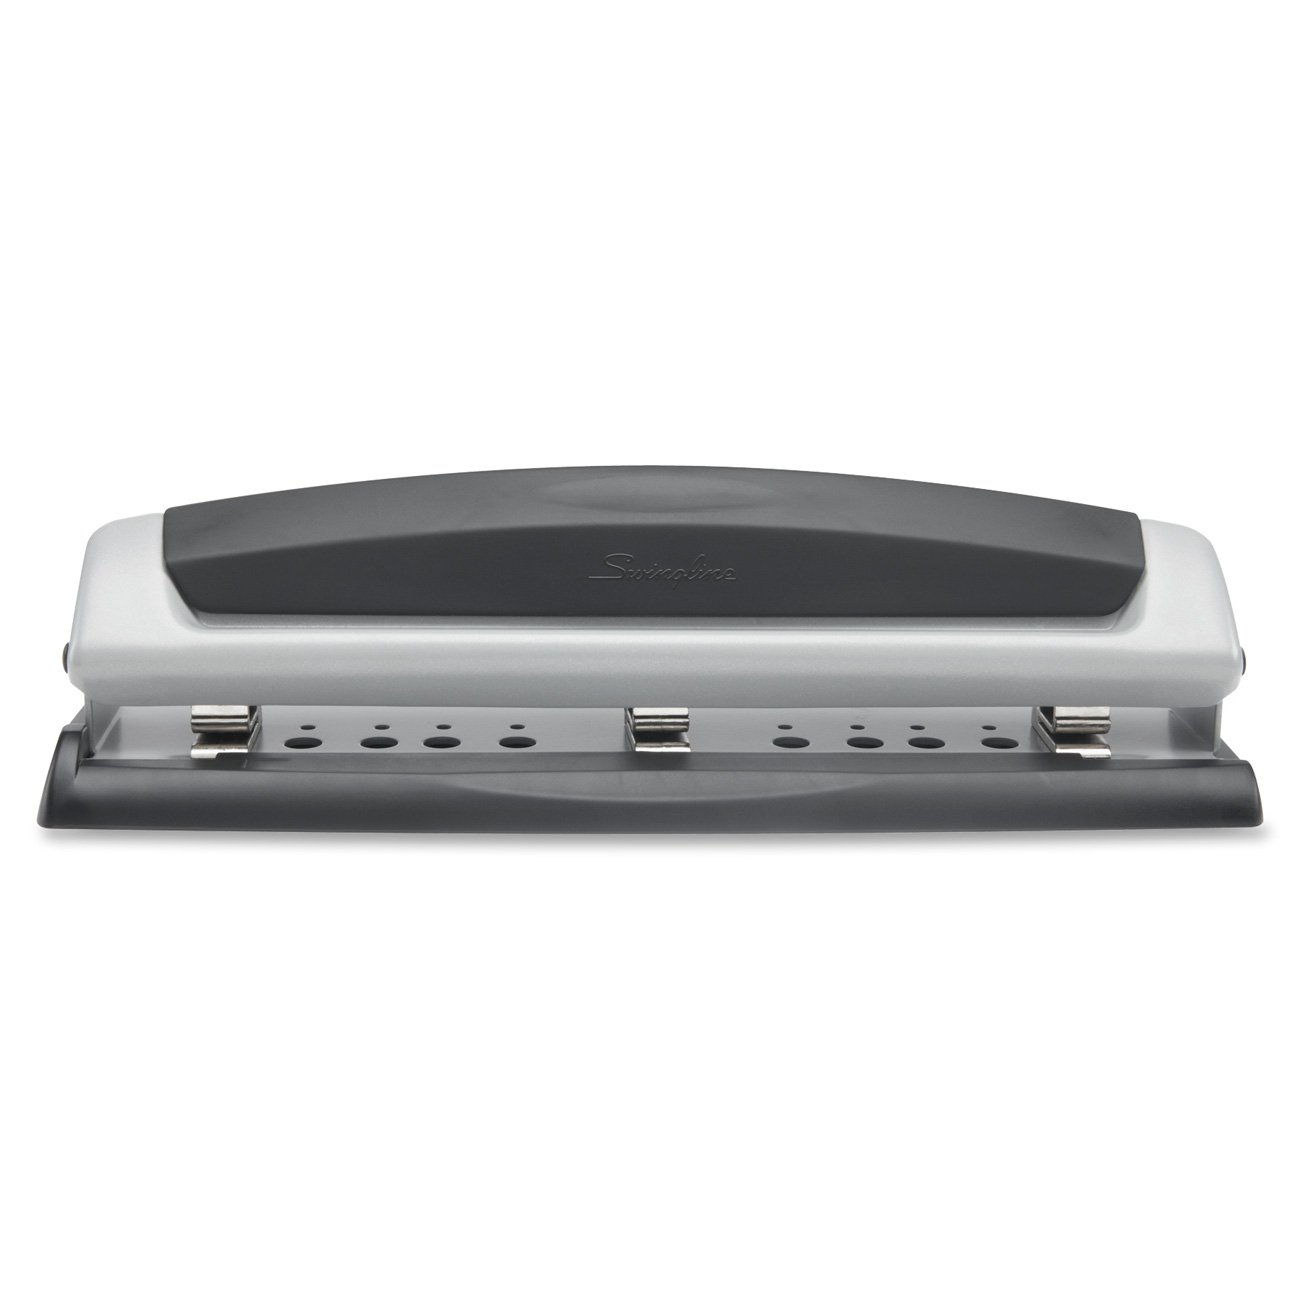 Swingline Precision Pro Black and Silver Desktop Paper Punch ($6.86)